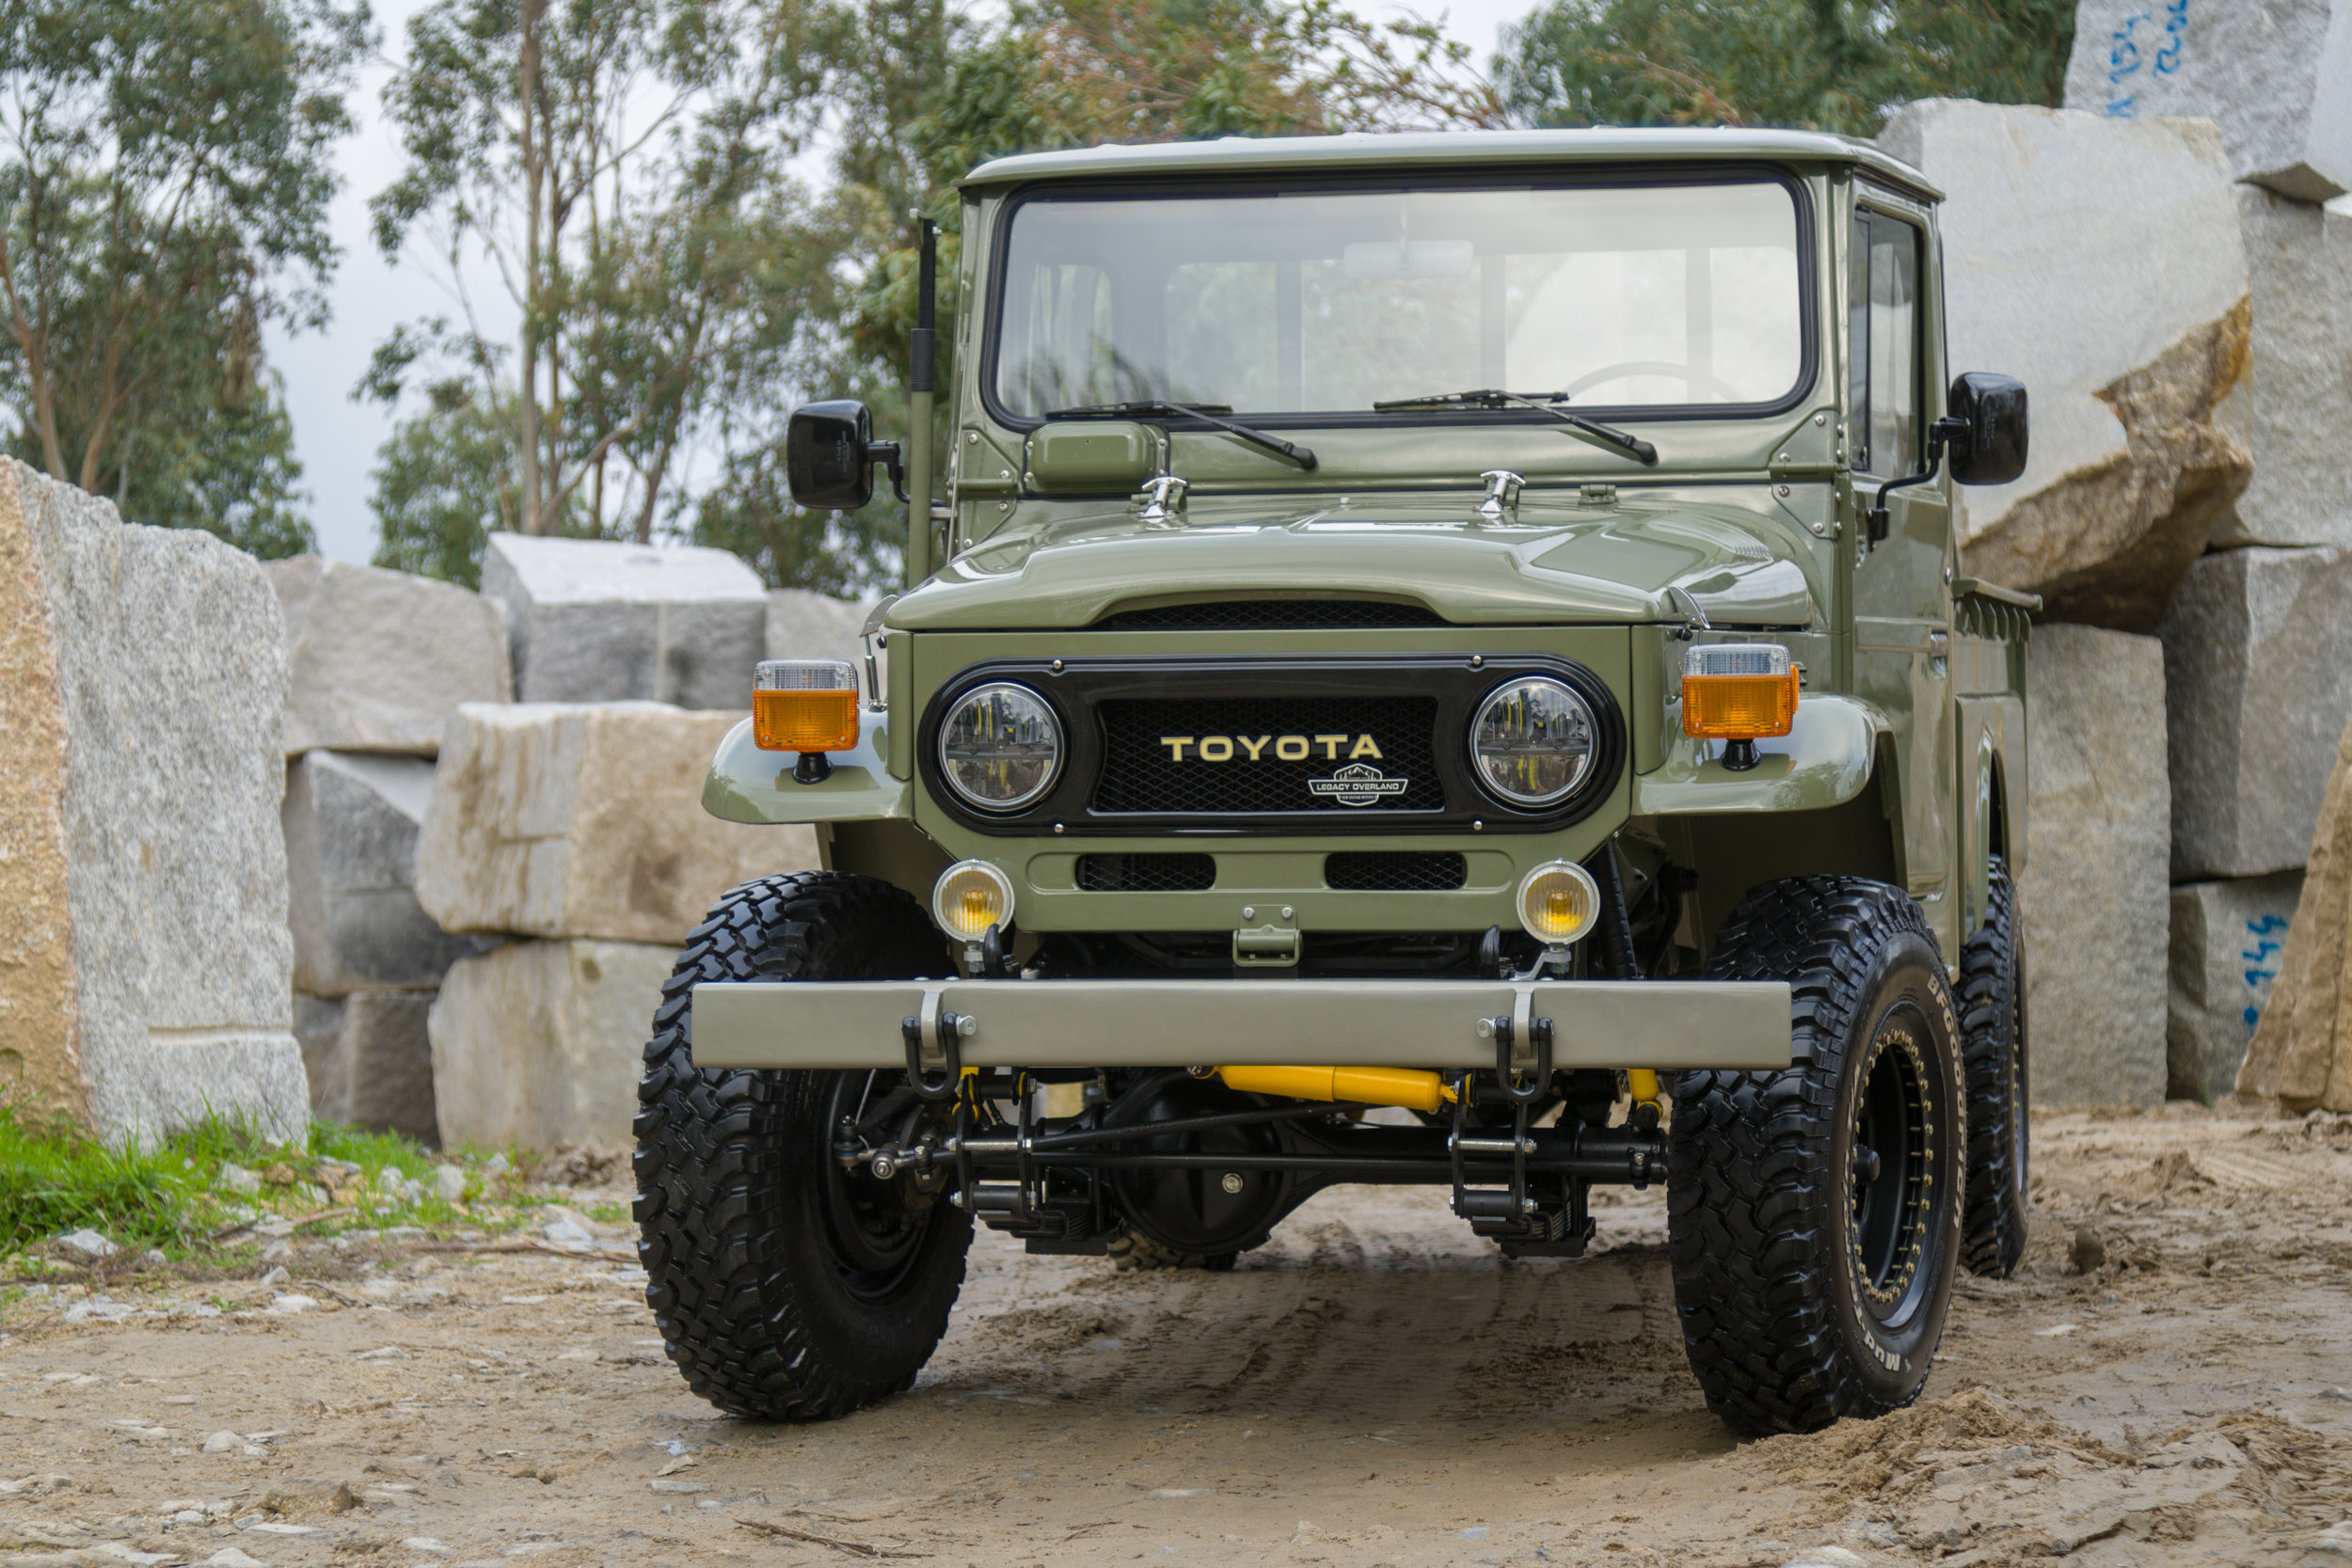 LegacyOverland_1978_ToyotaLandCruiser_HJ45_pick-up_quarry_62.jpg